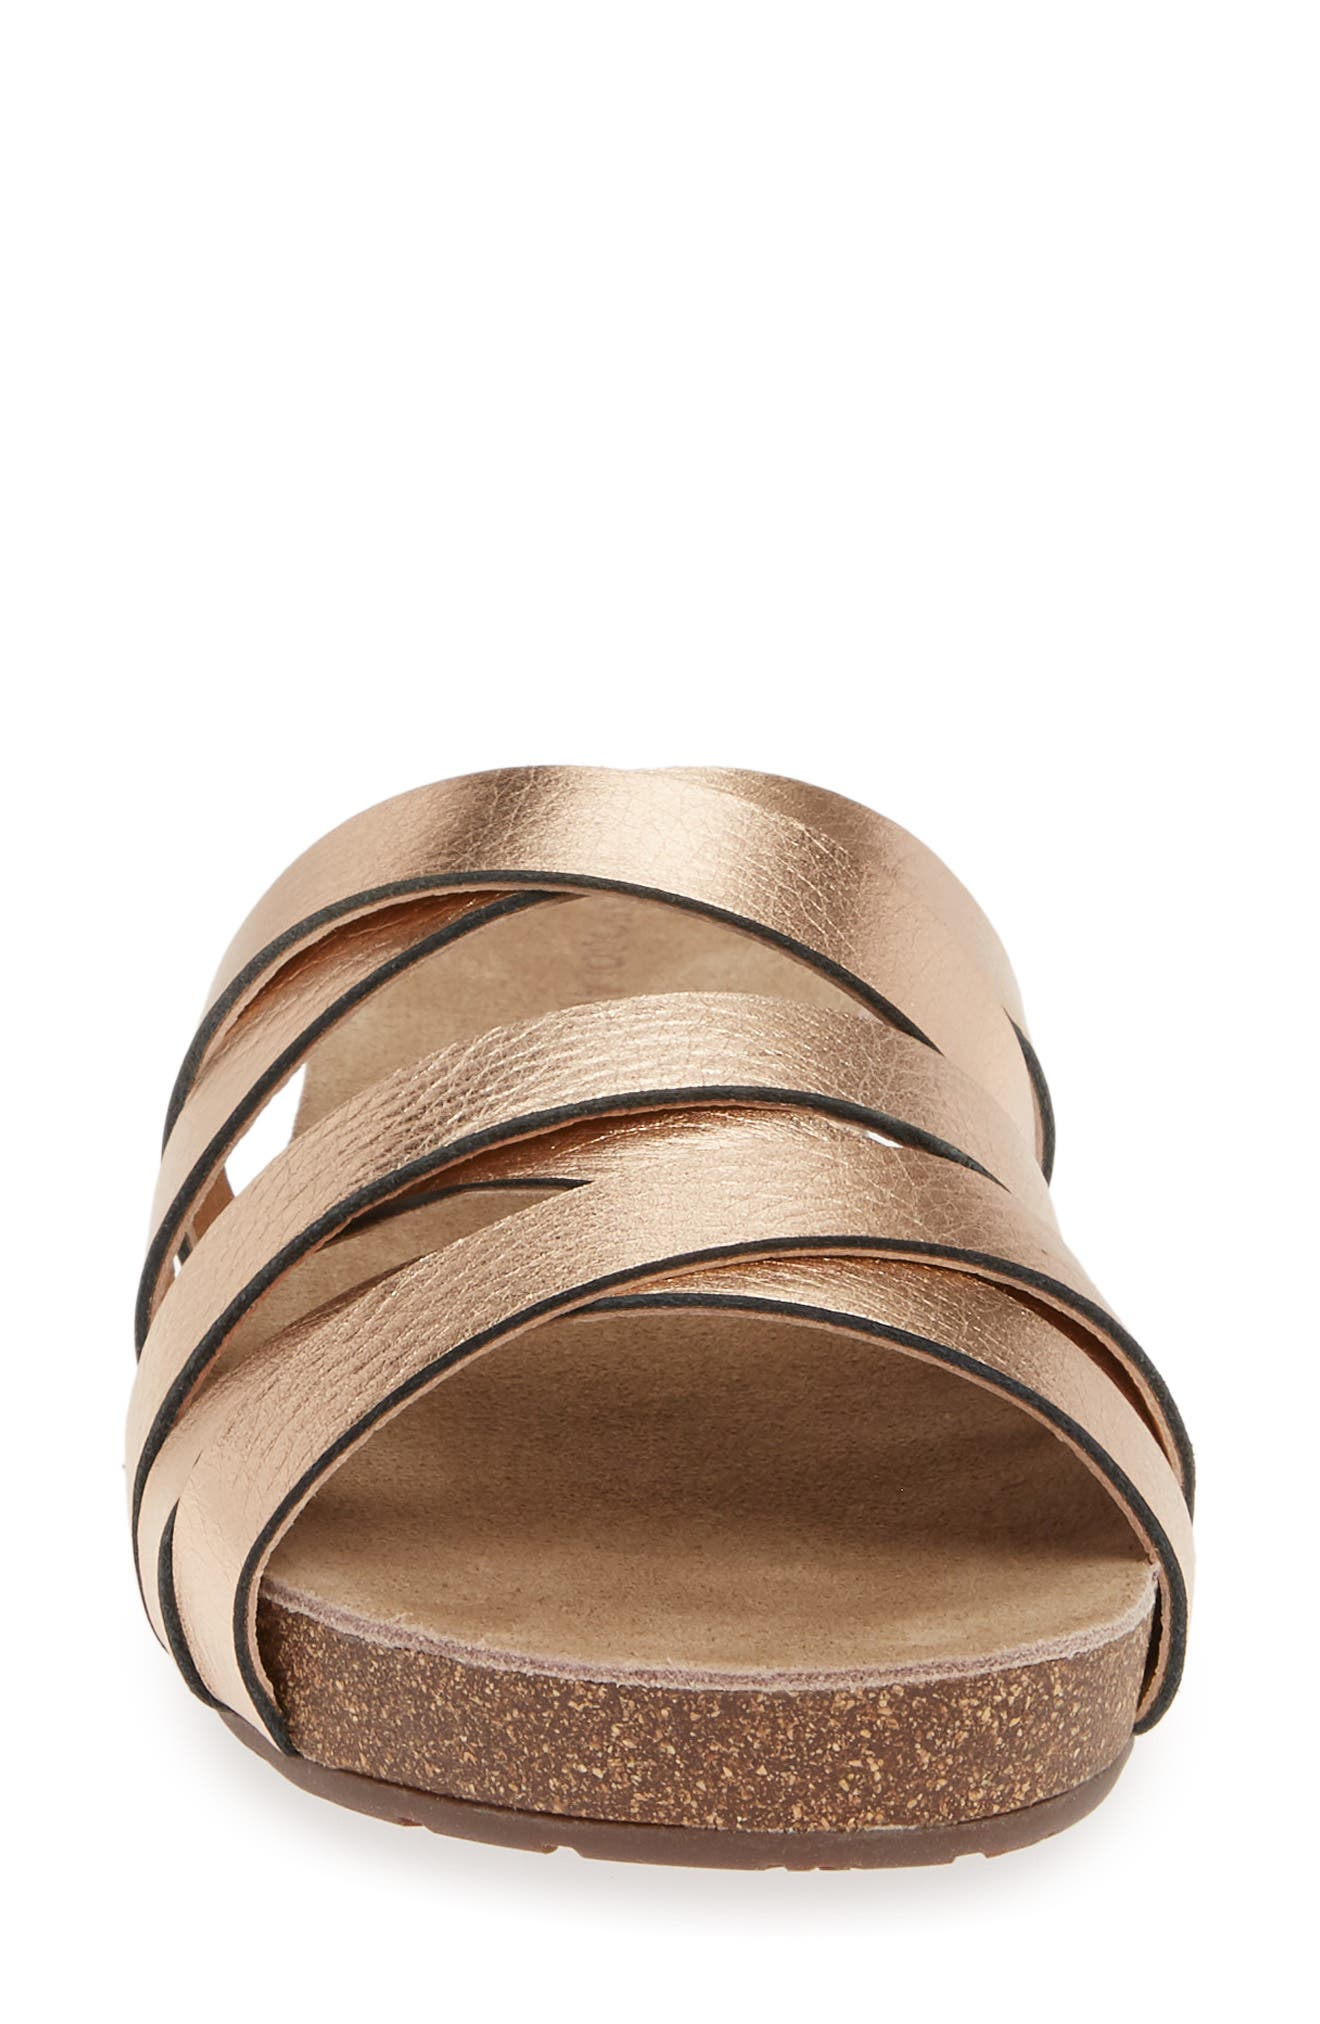 Slide Sandal,                             Alternate thumbnail 4, color,                             ROSE GOLD SUEDE